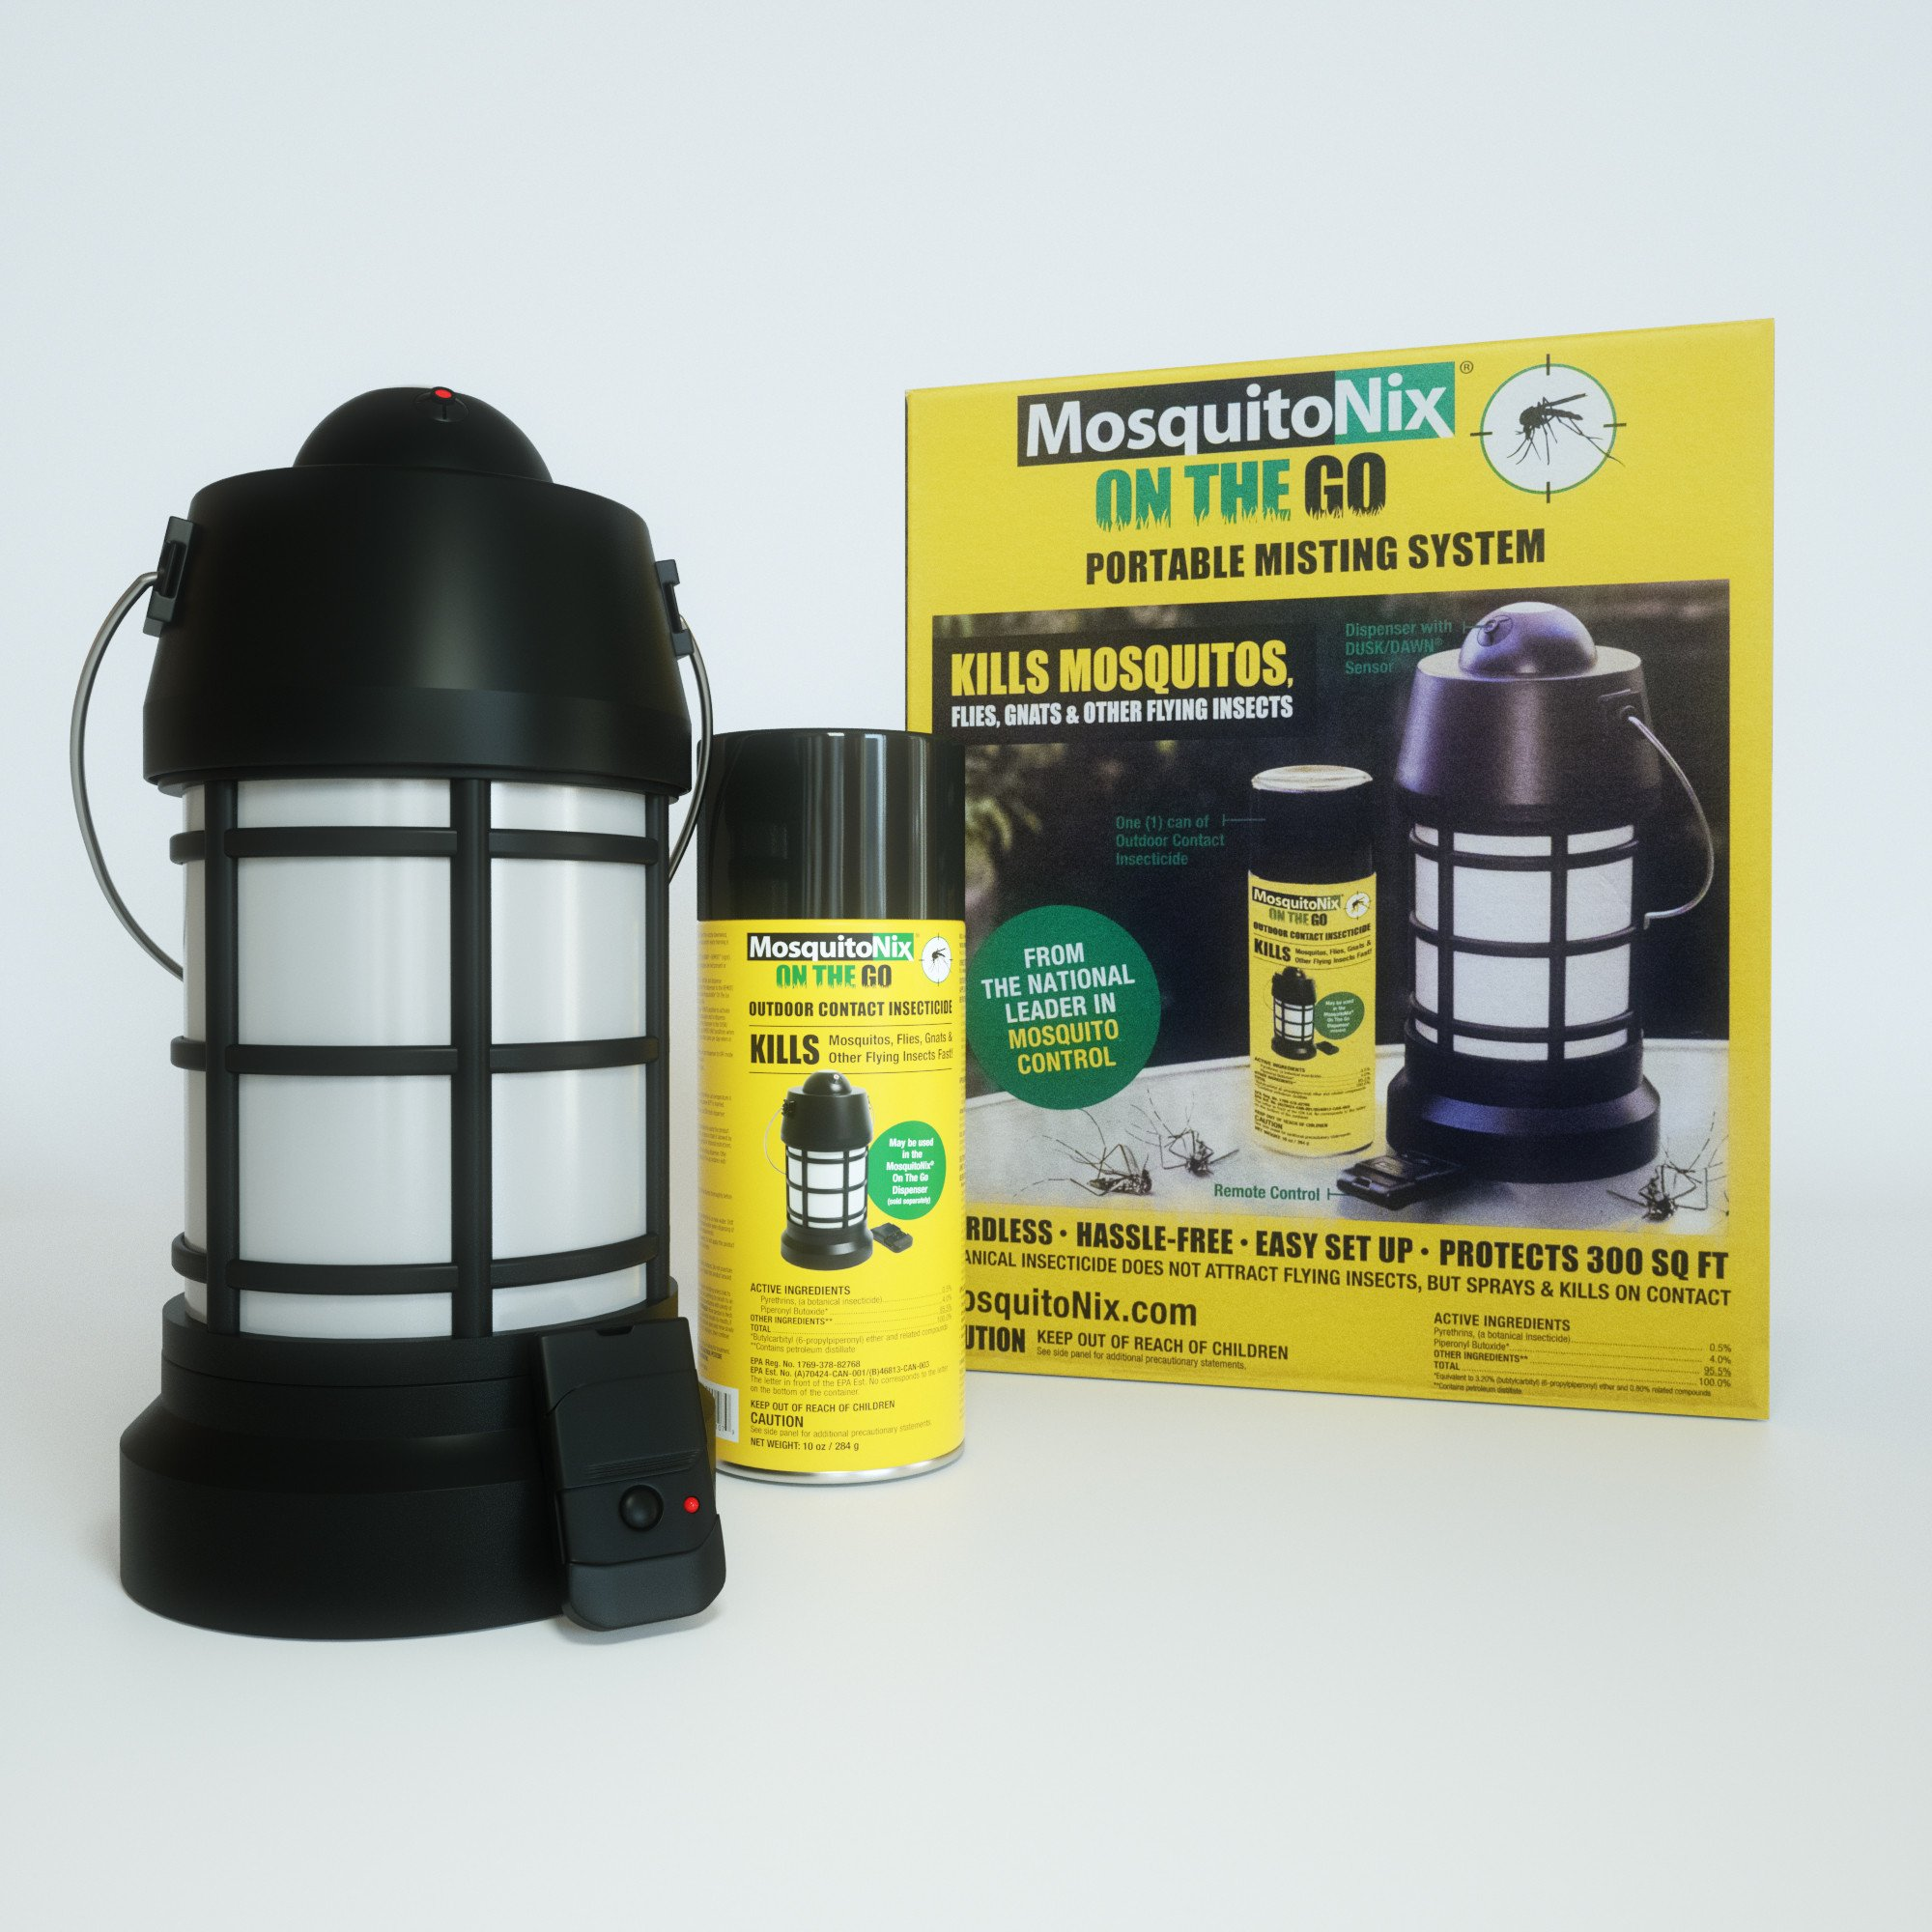 Portable Dispenser and Outdoor Contact Insecticide